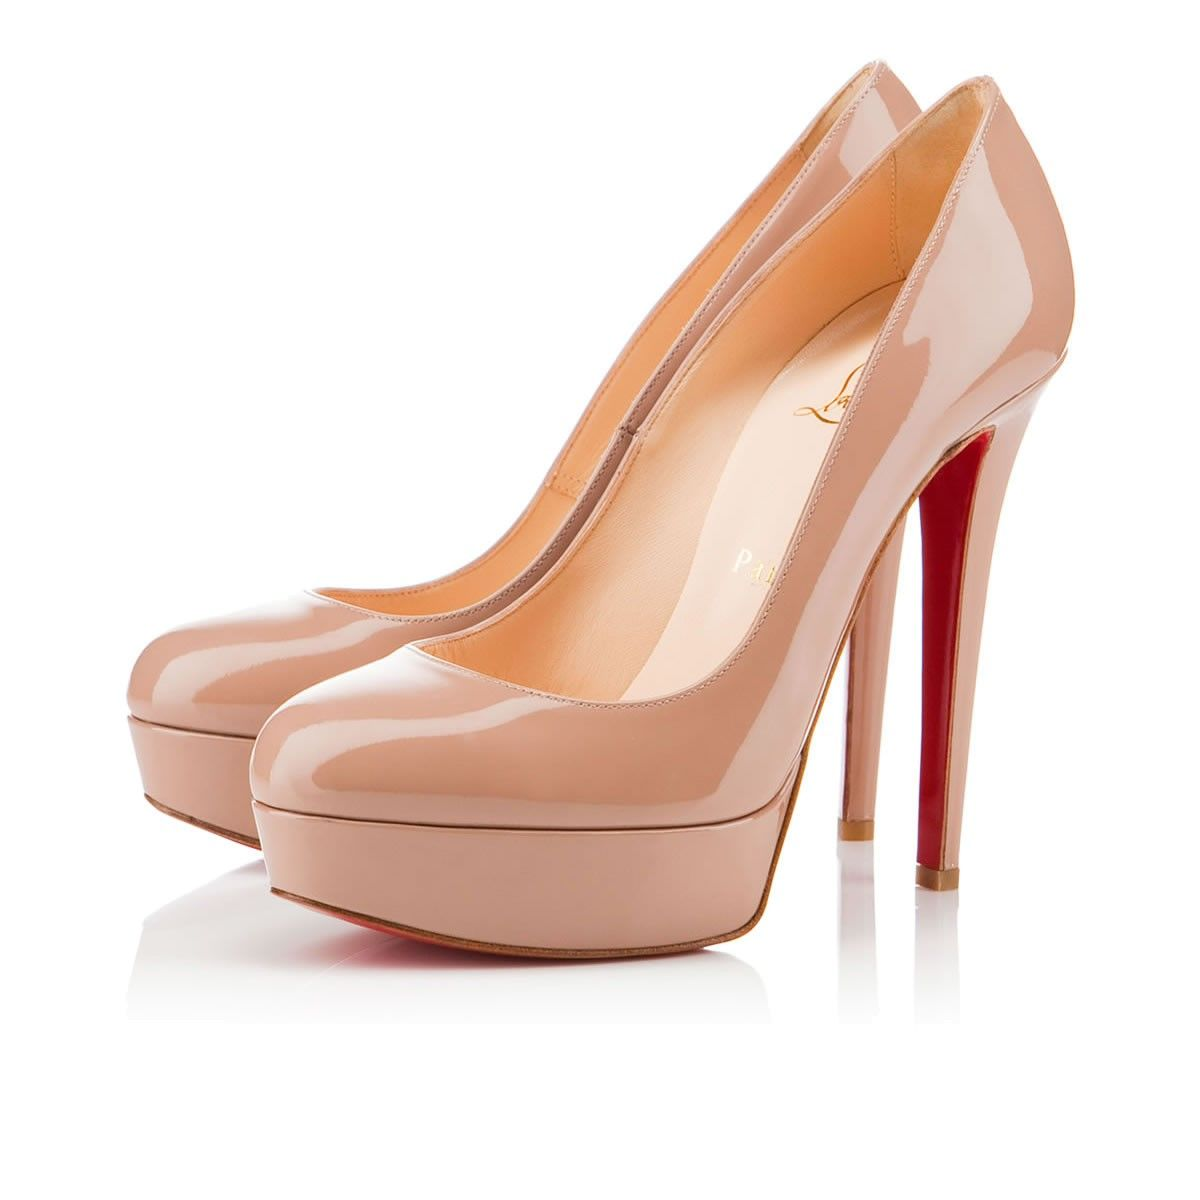 9b9a03303c6 Bianca 140 Nude Patent Leather - Women Shoes - Christian Louboutin ...